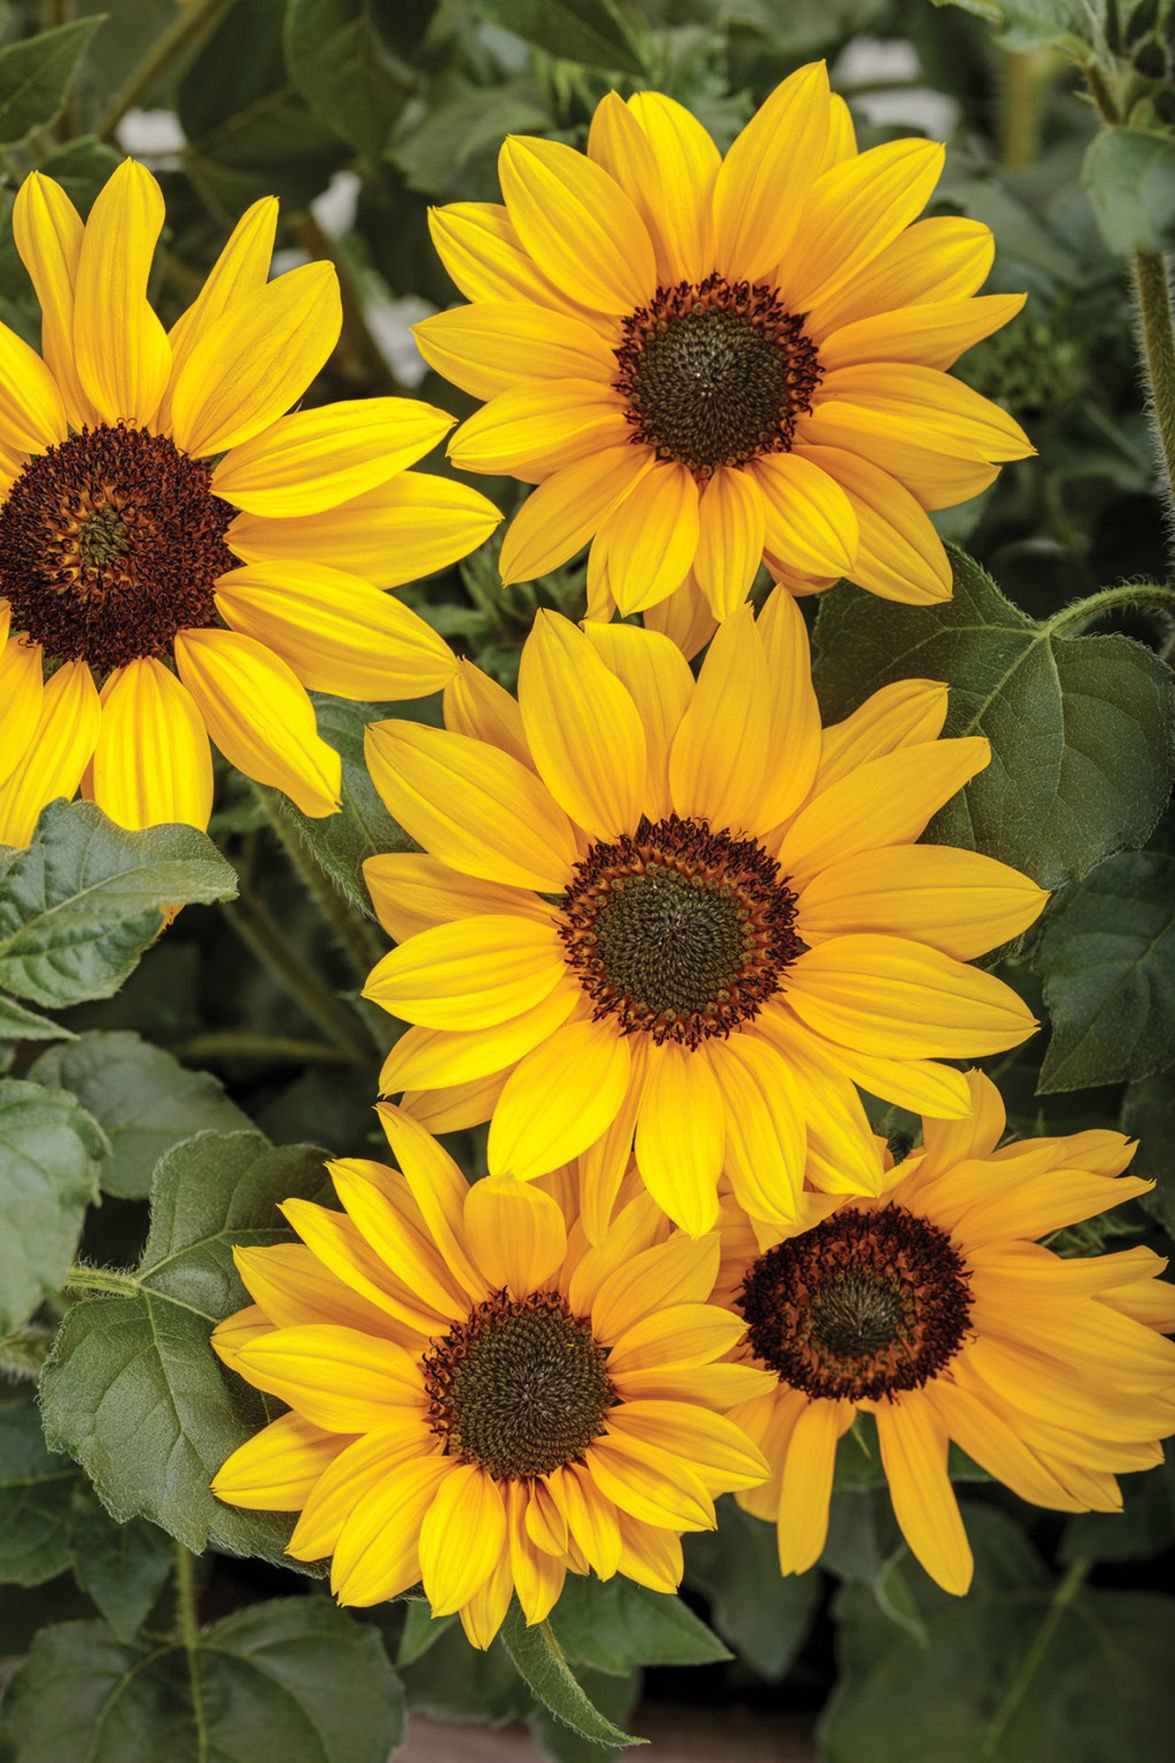 Suncredible Yellow An Ever Blooming Bush Sunflower Agriculture Nny360 Com